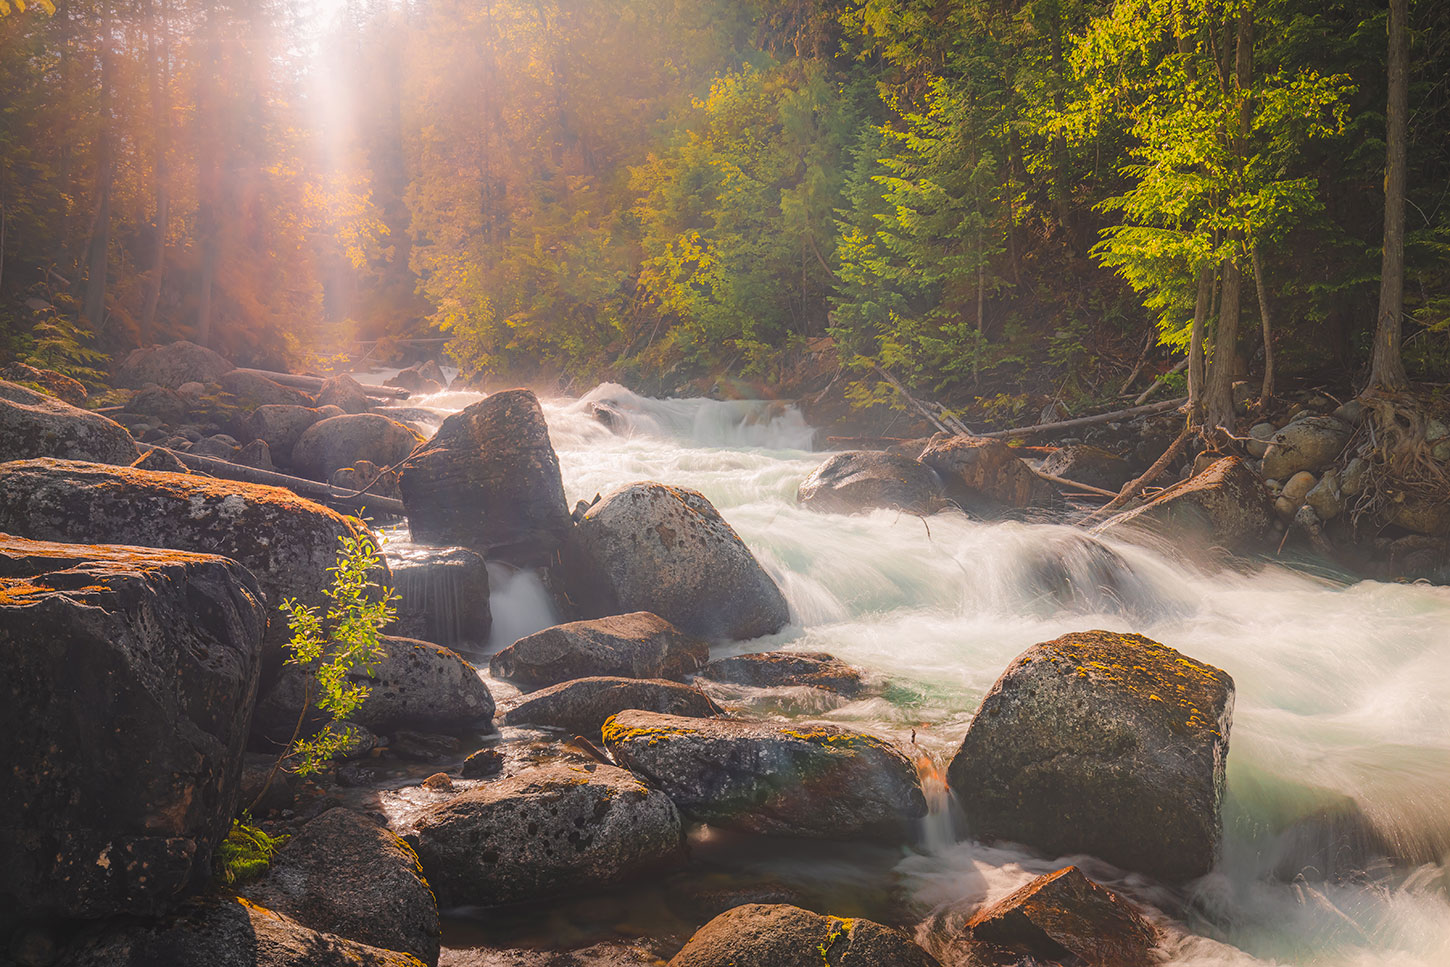 Creek and boulders in soft afternoon light